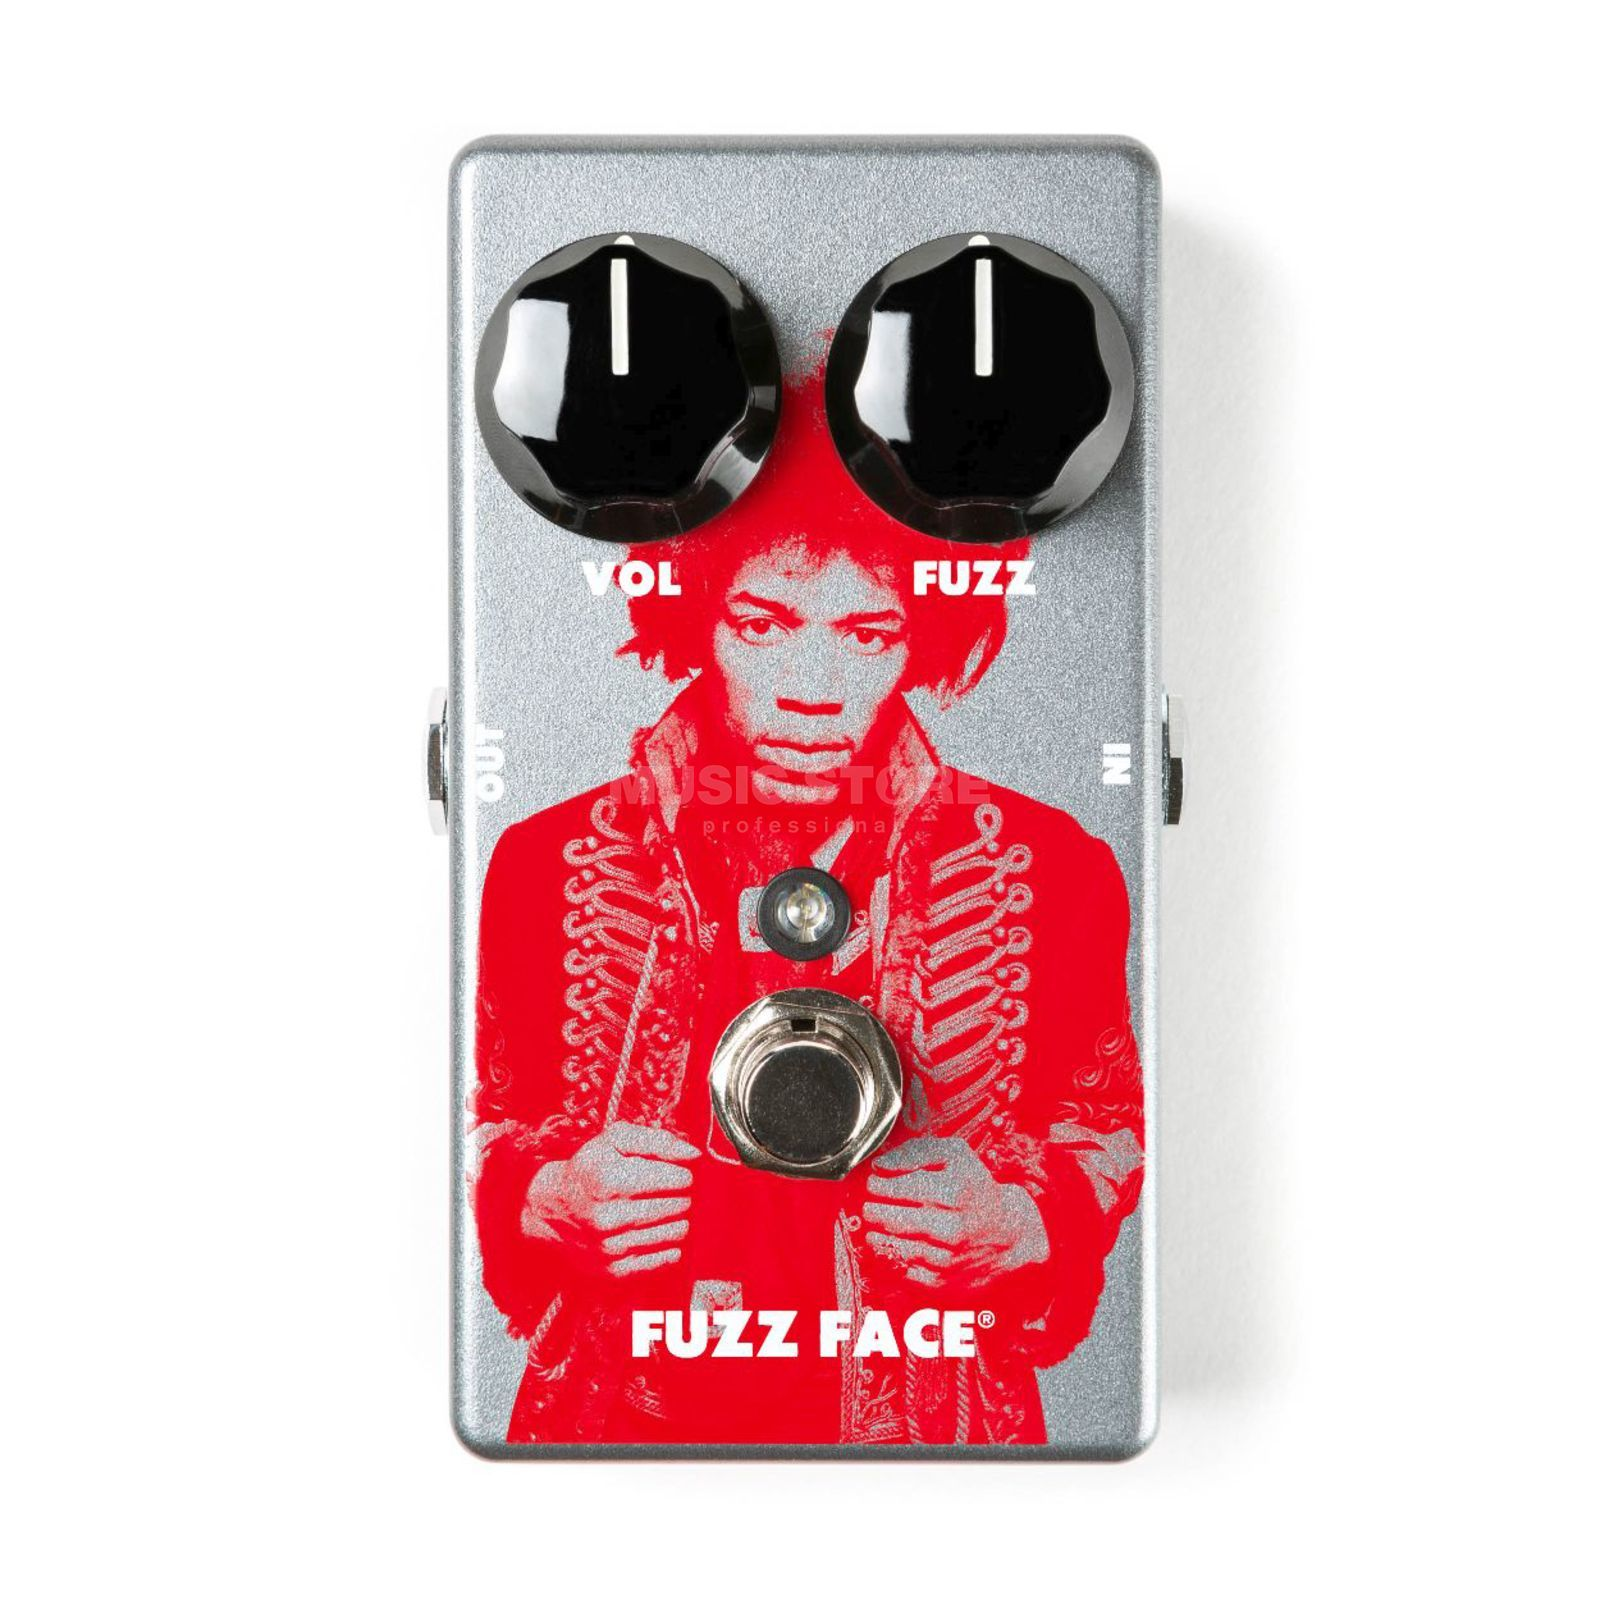 Dunlop JHM5 Jimi Hendrix Fuzz Face Distortion Product Image